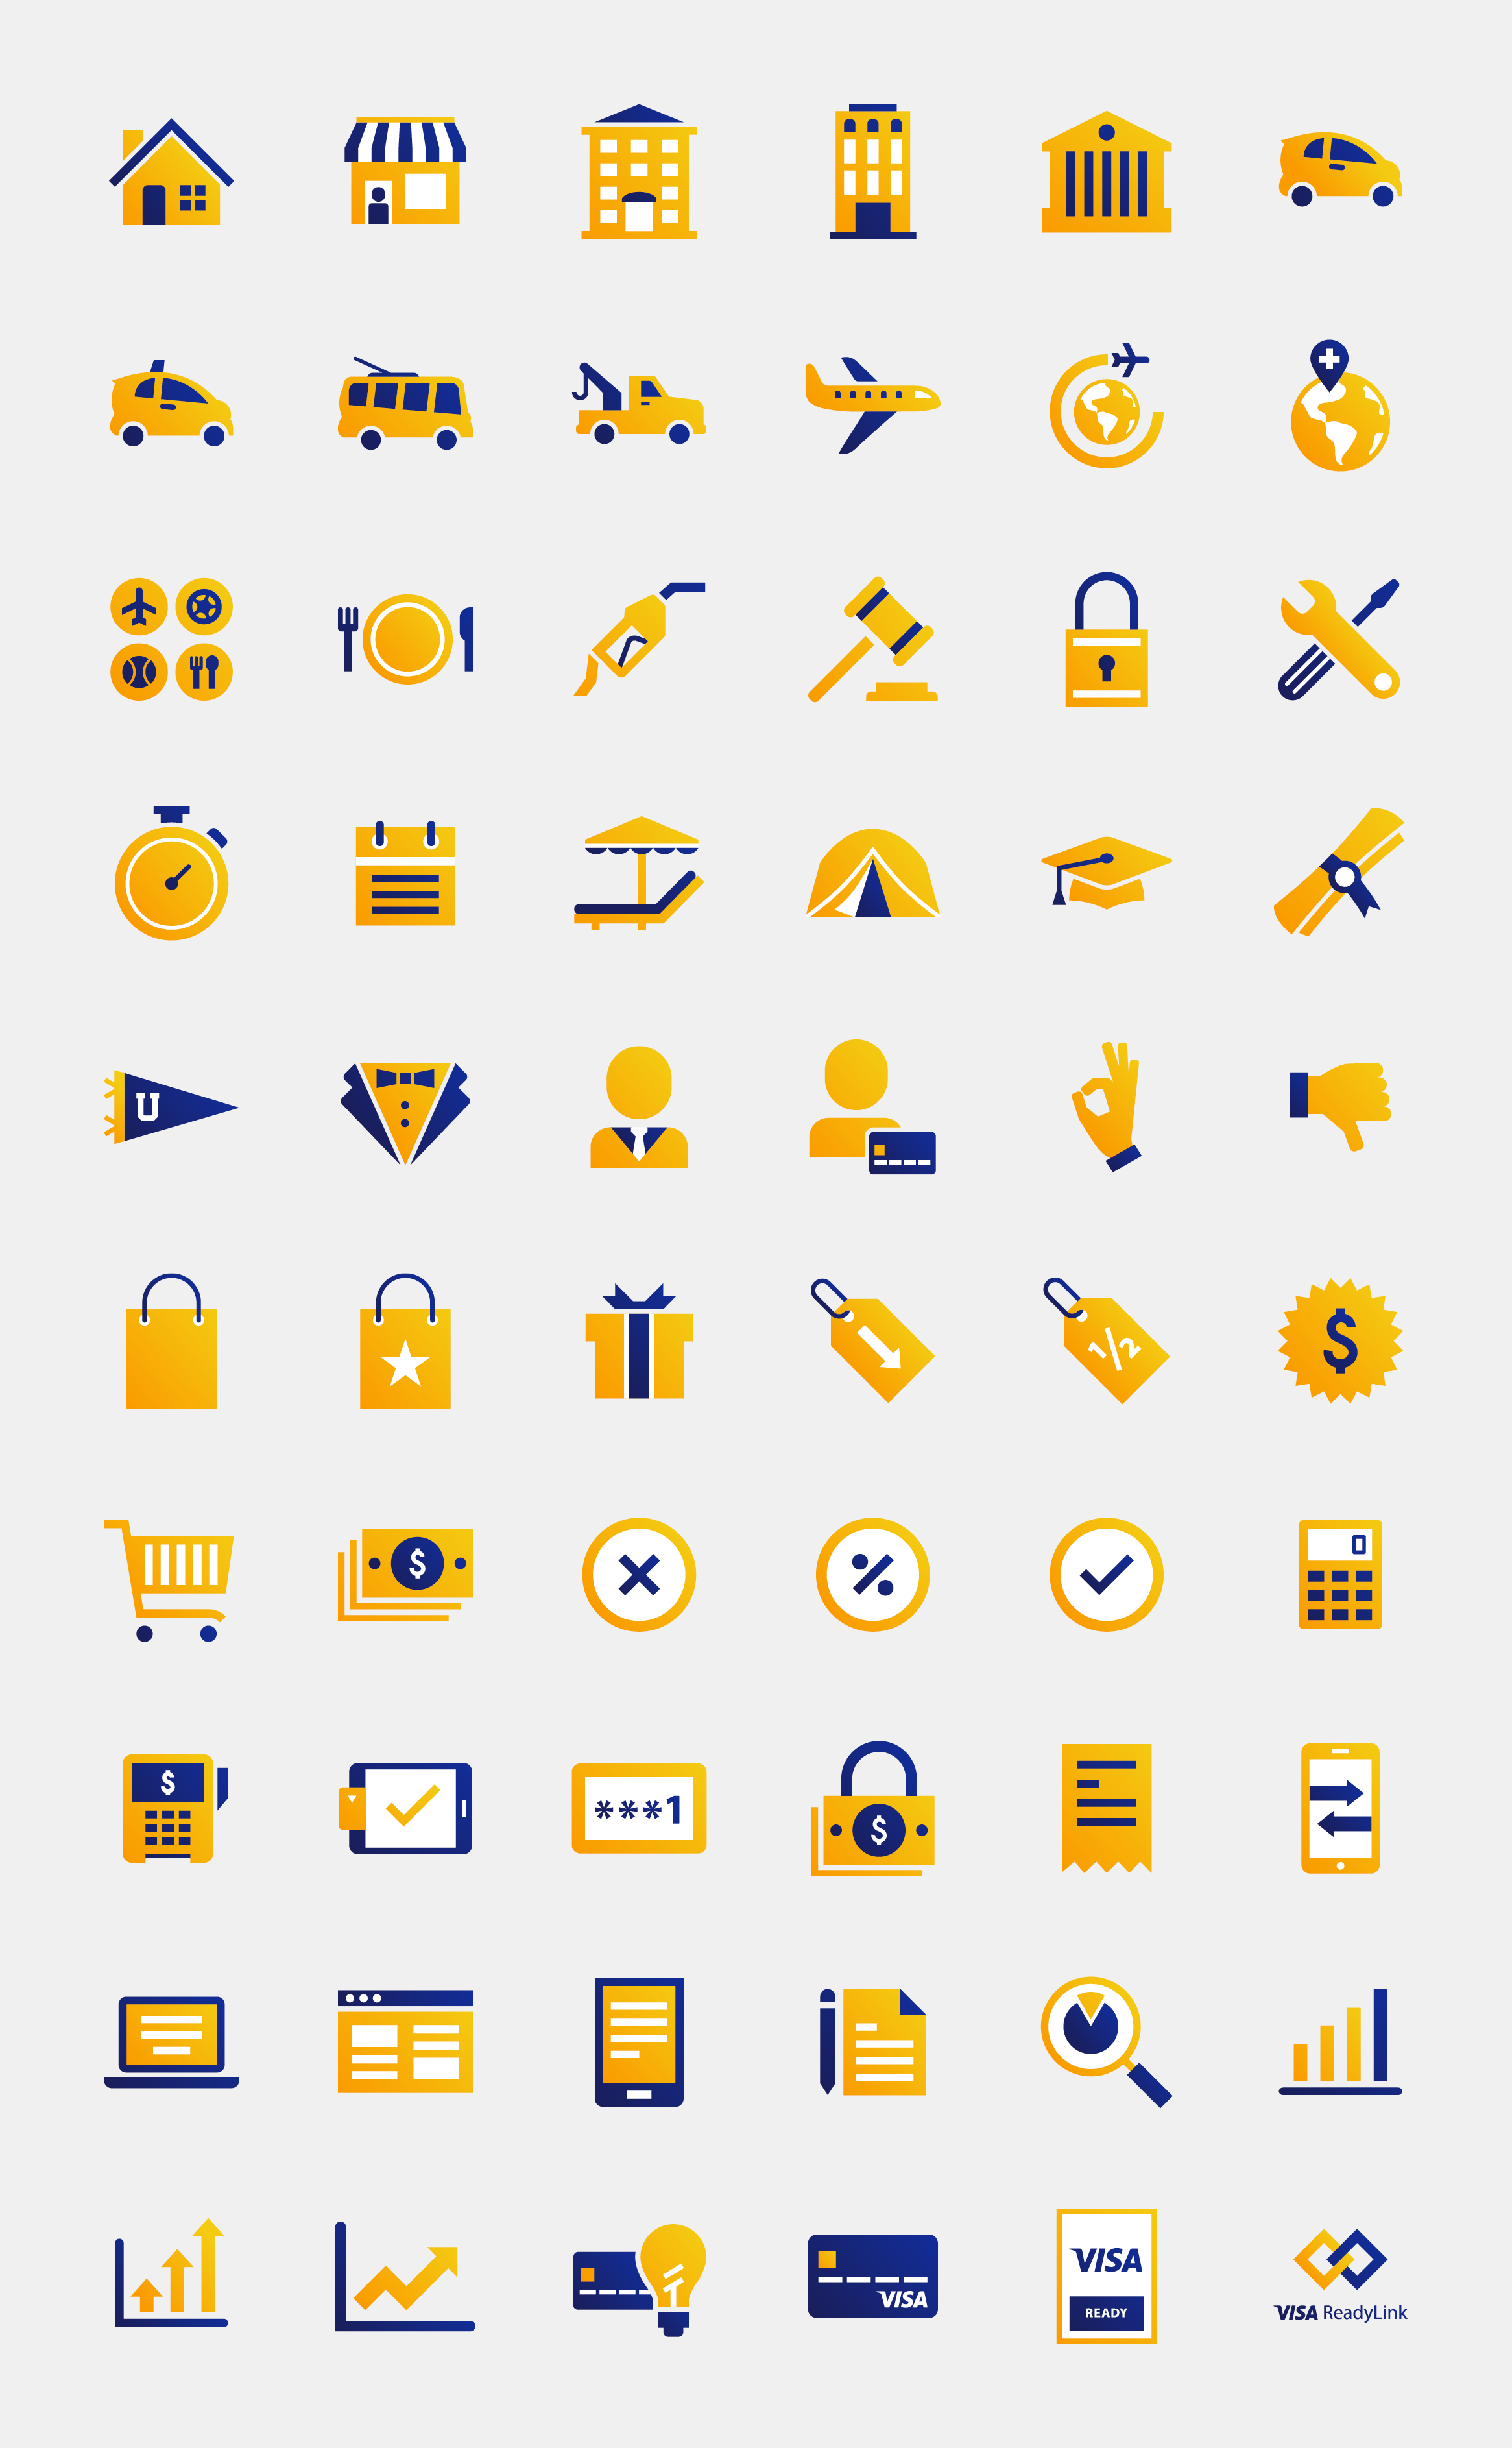 Visa website illustrated icons